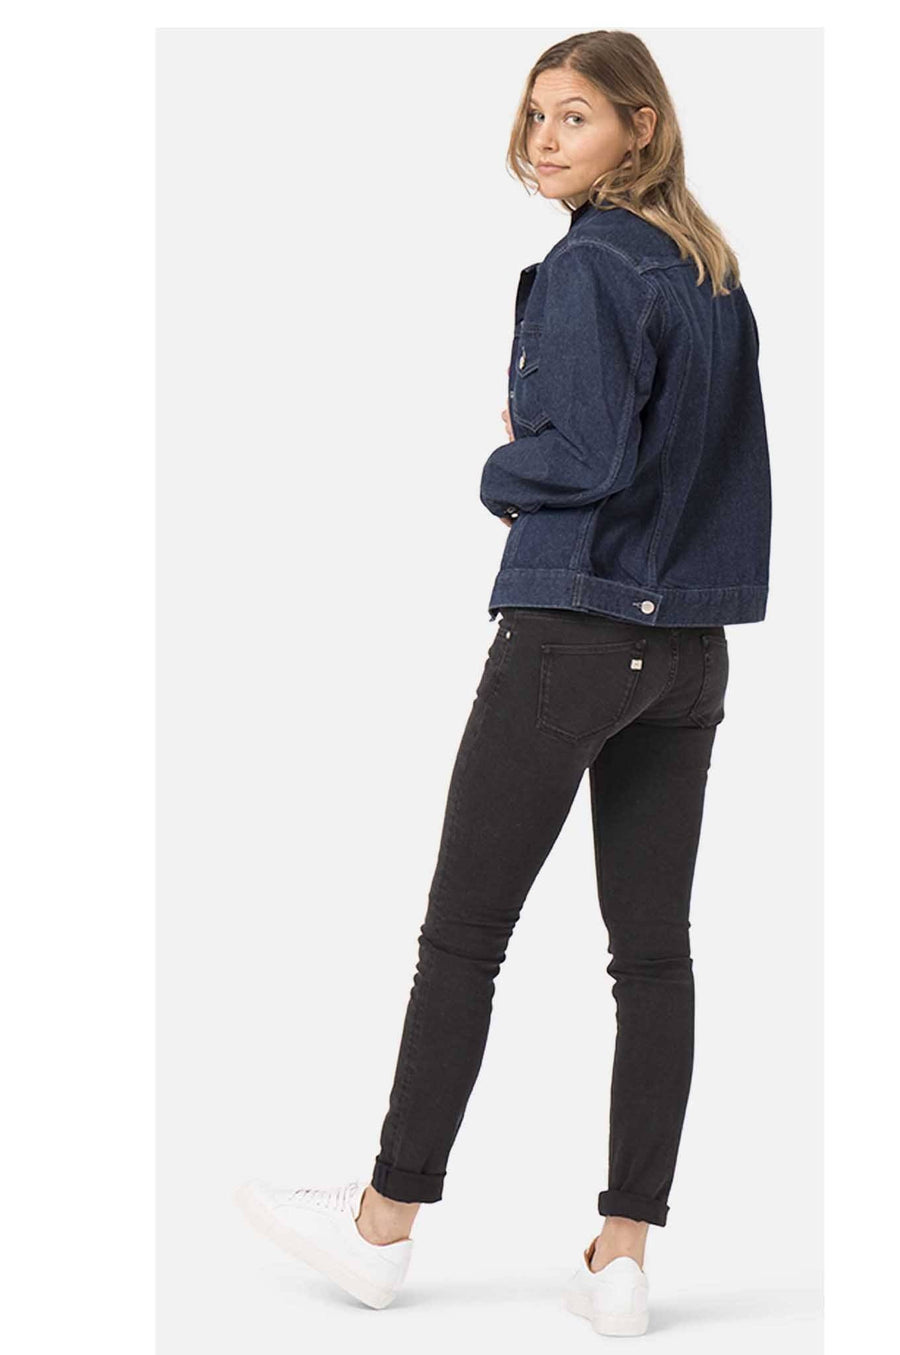 Trousers - LILLY Womens Skinny Black Jeans By MUD